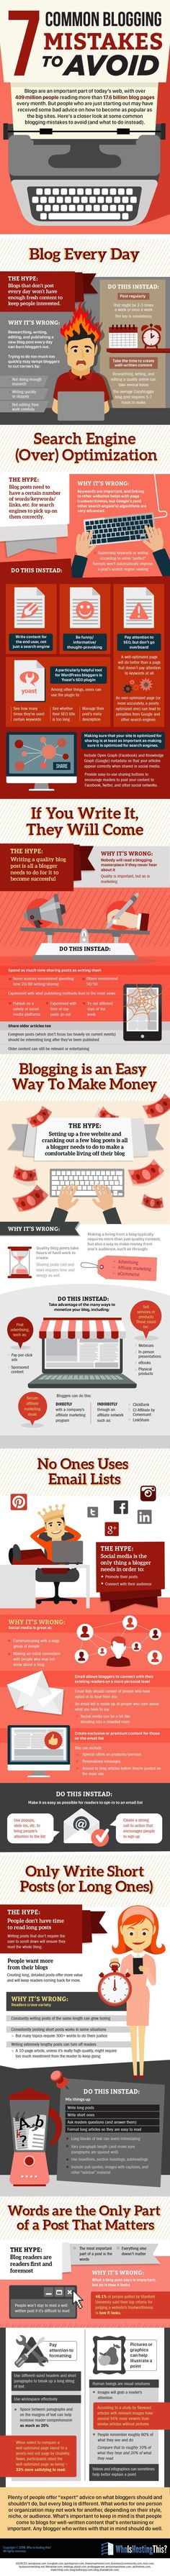 7 Common Blogging Mistakes to Avoid  [by WhoIsHostingThis -- via #tipsographic]. More at http://tipsographic.com